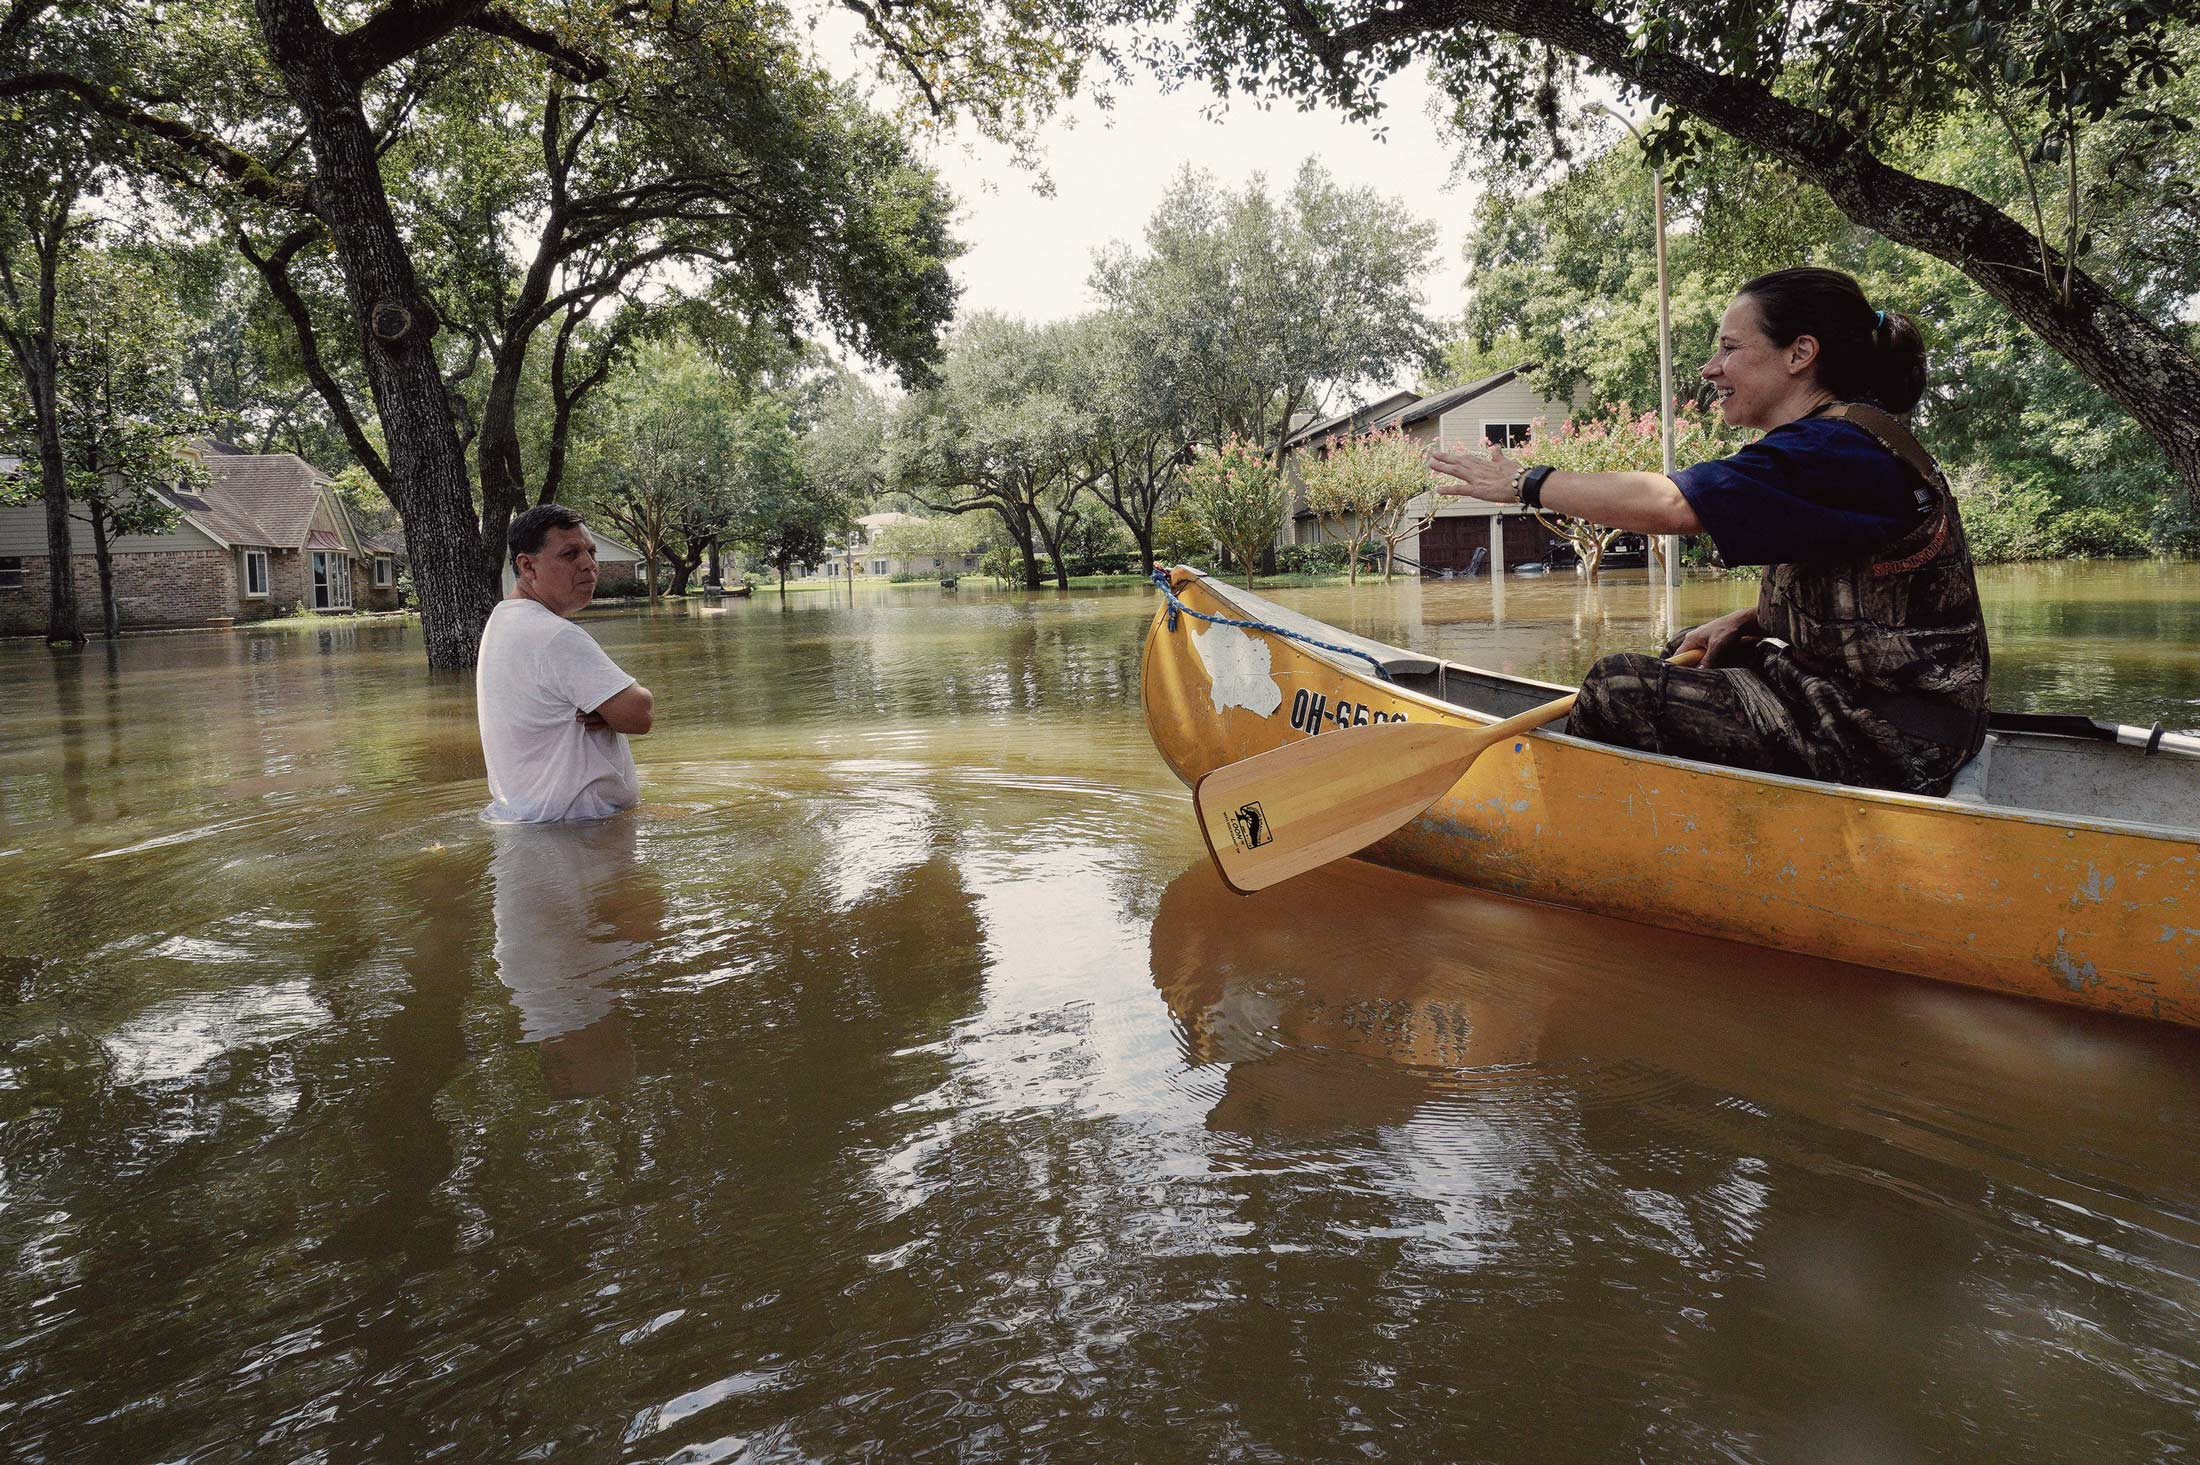 A woman in a canoe talks to a man standing in hurricane floodwaters. Houses and trees are partially submerged in the background.